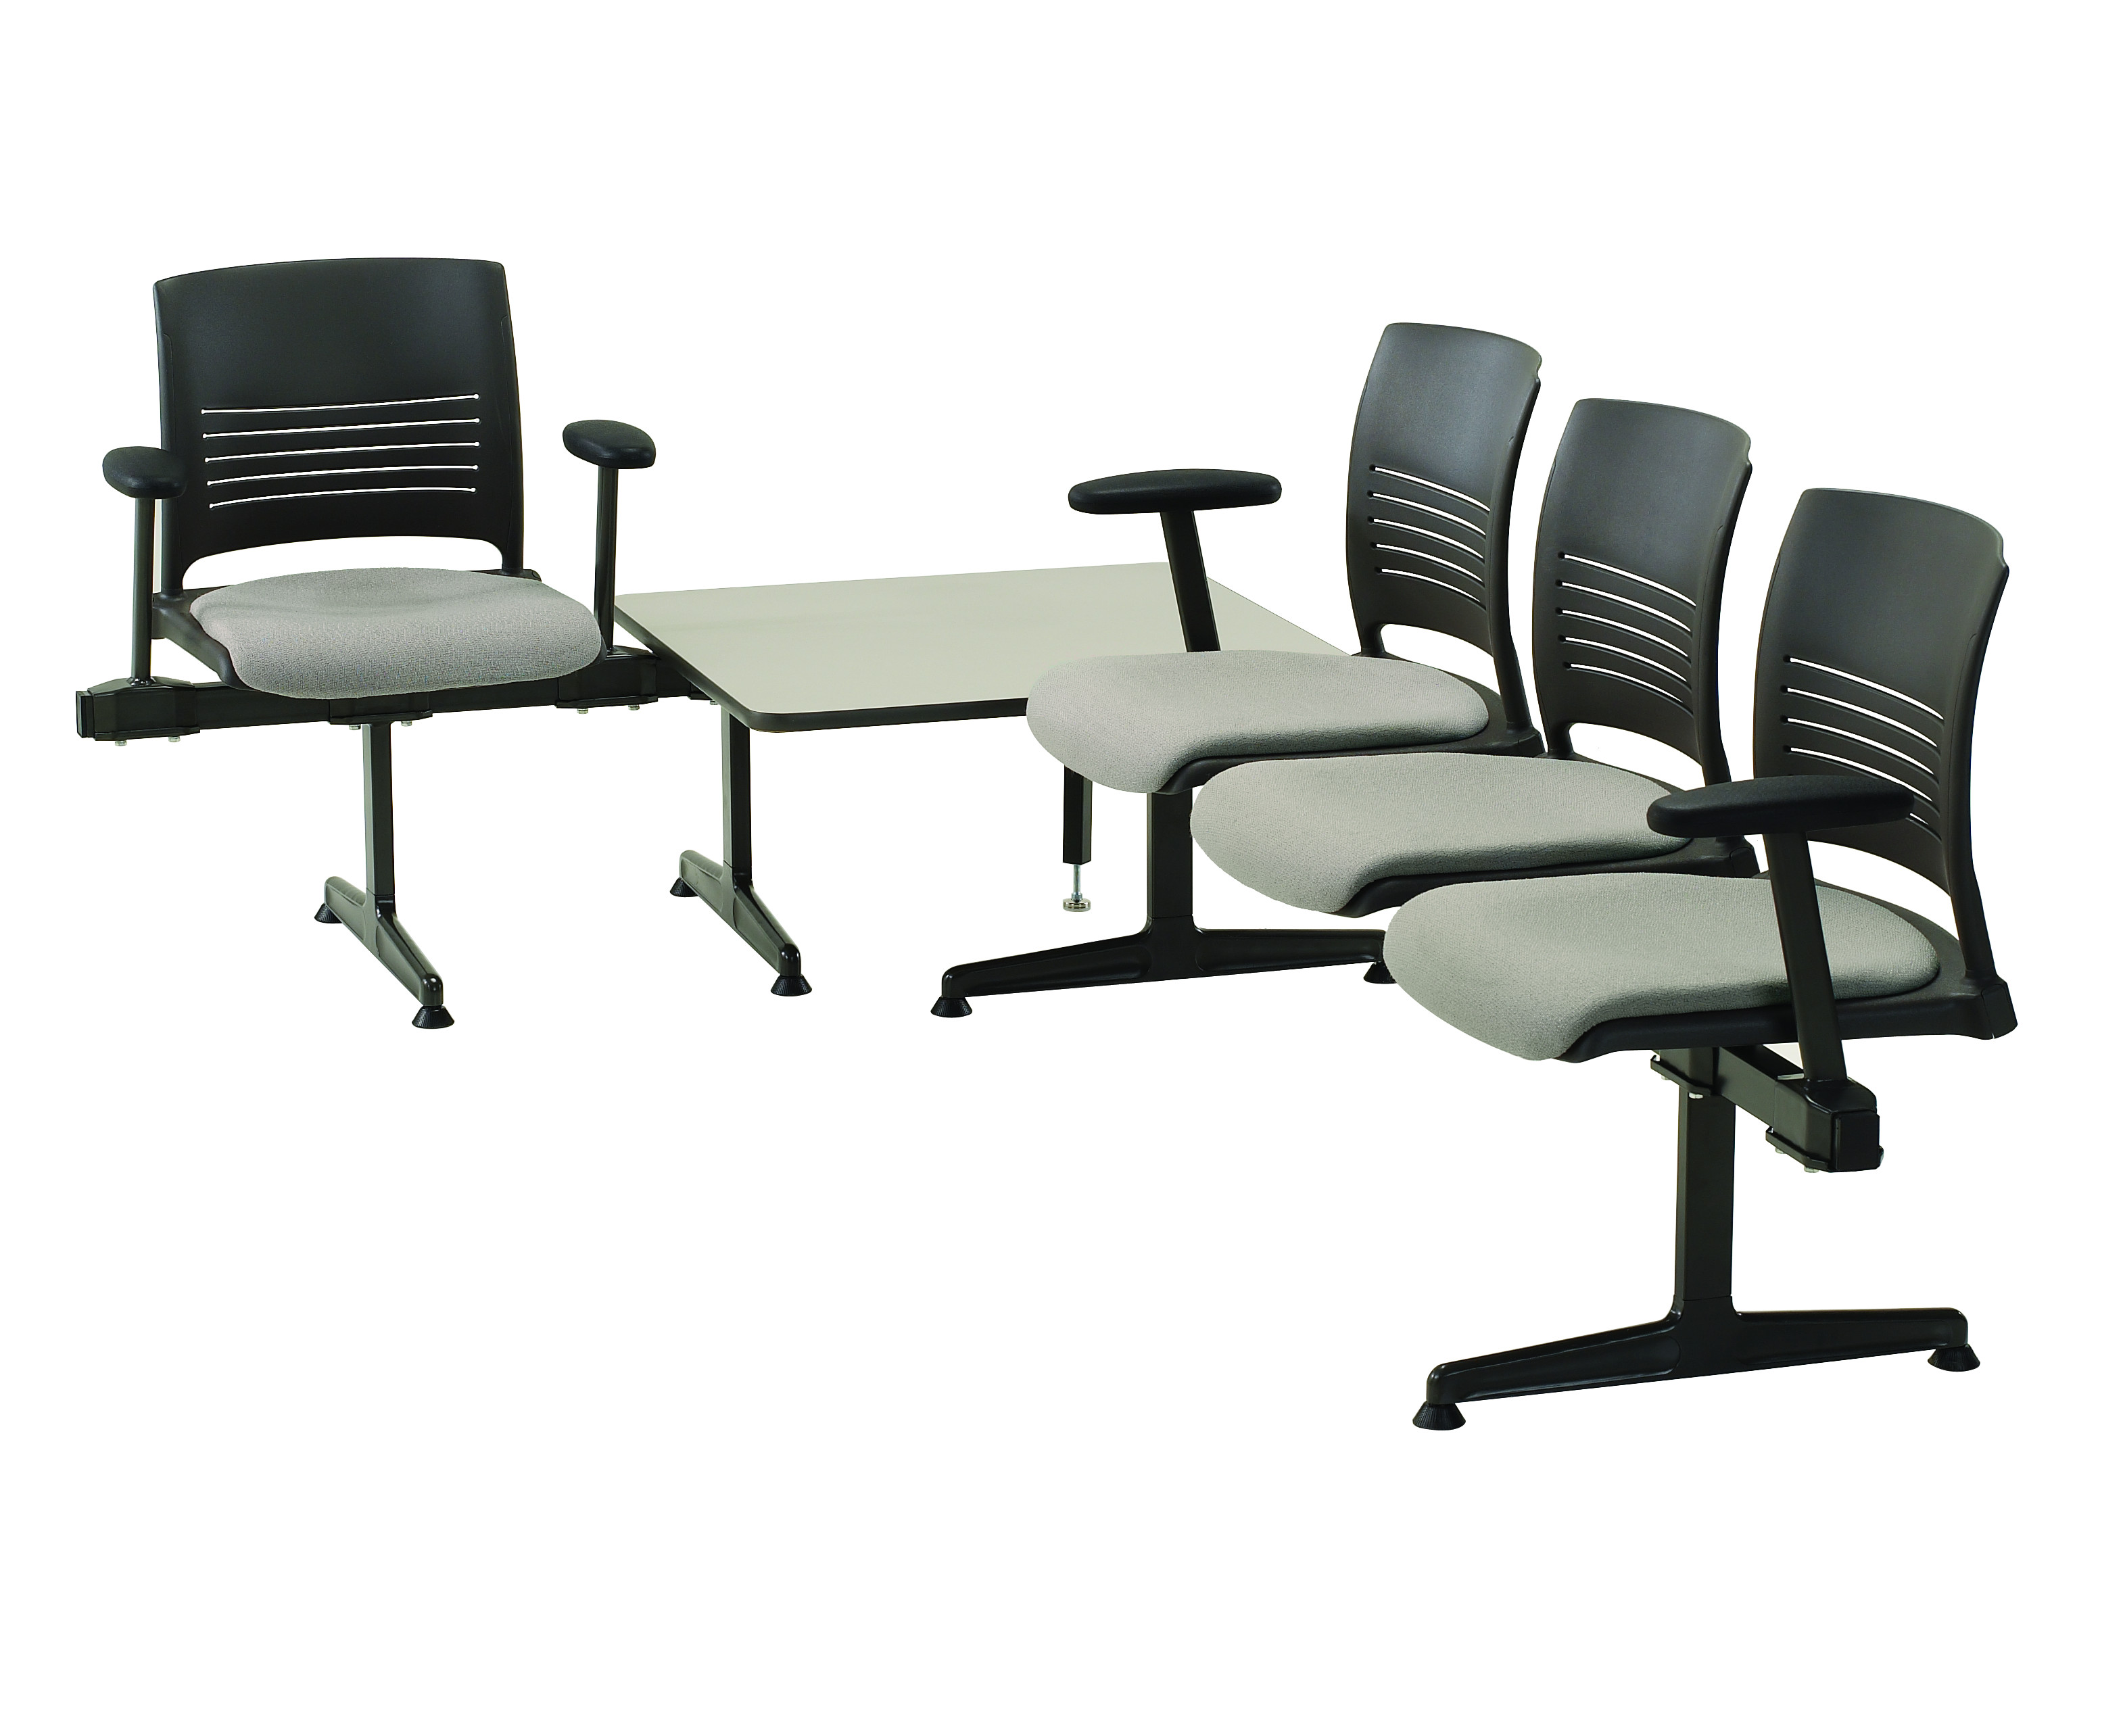 ki strive chair swivel office with wheels collection systemcenter